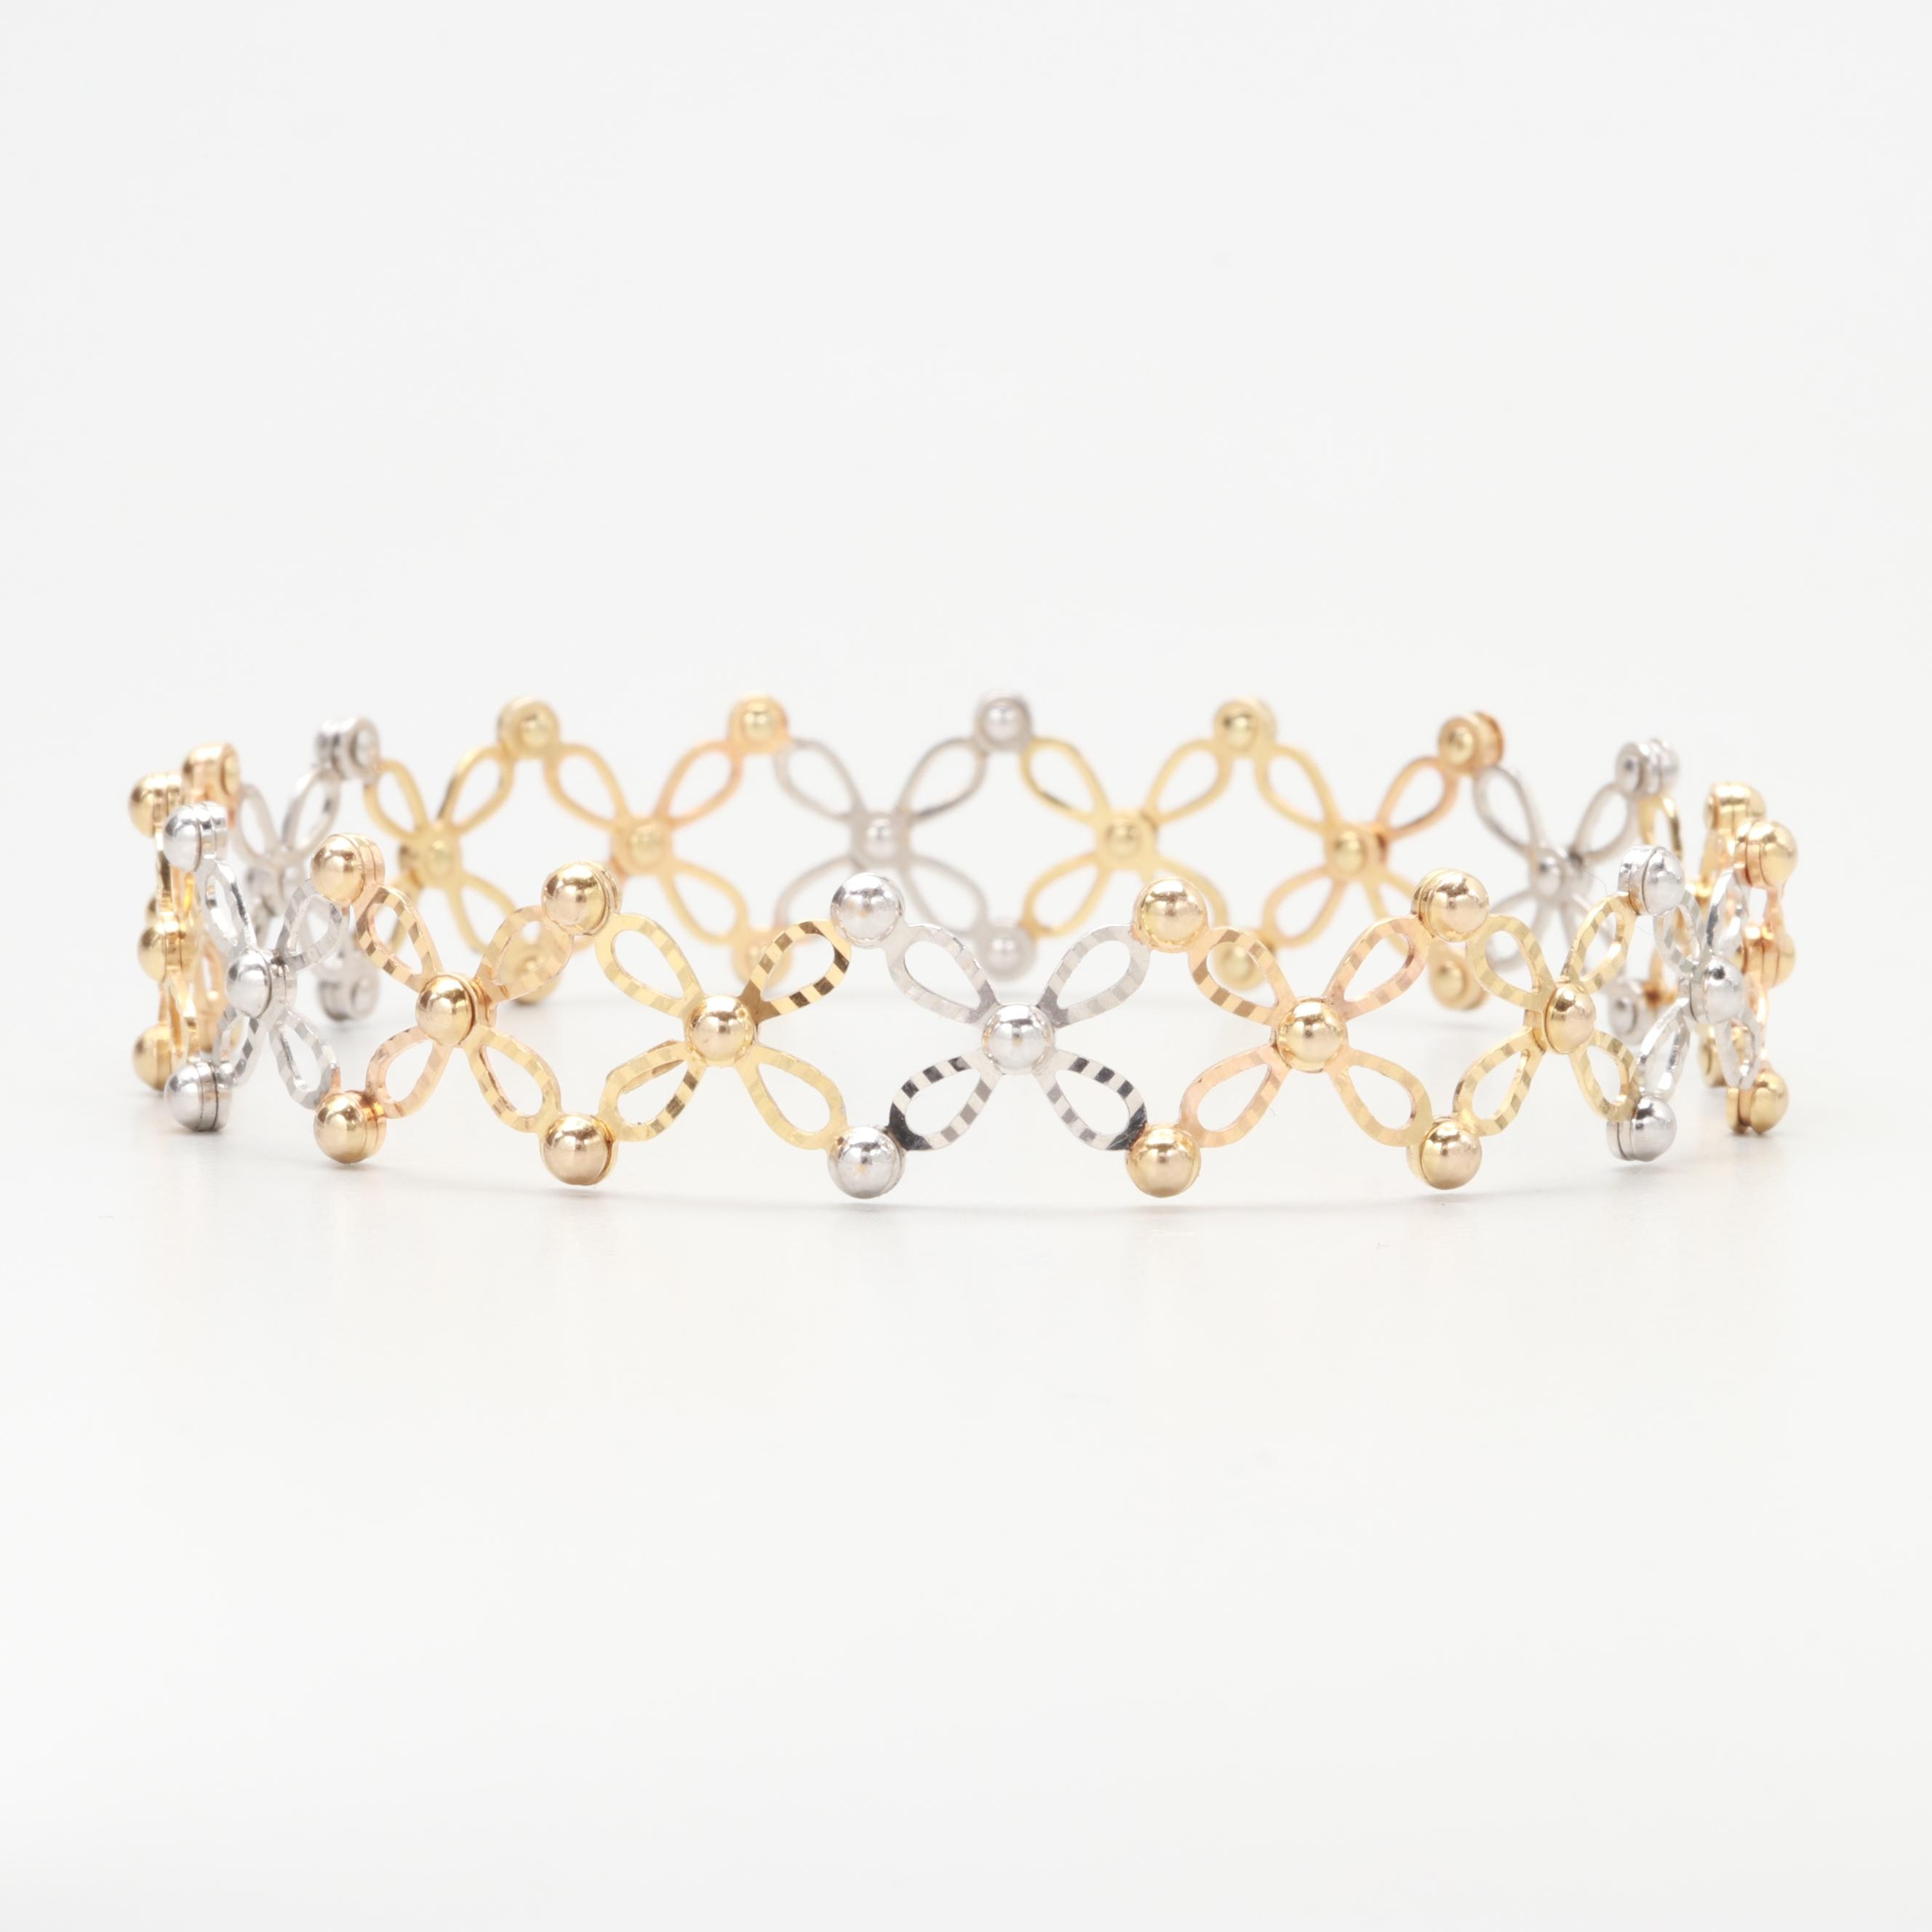 14K Yellow and White Gold Expandable Ring Bracelet